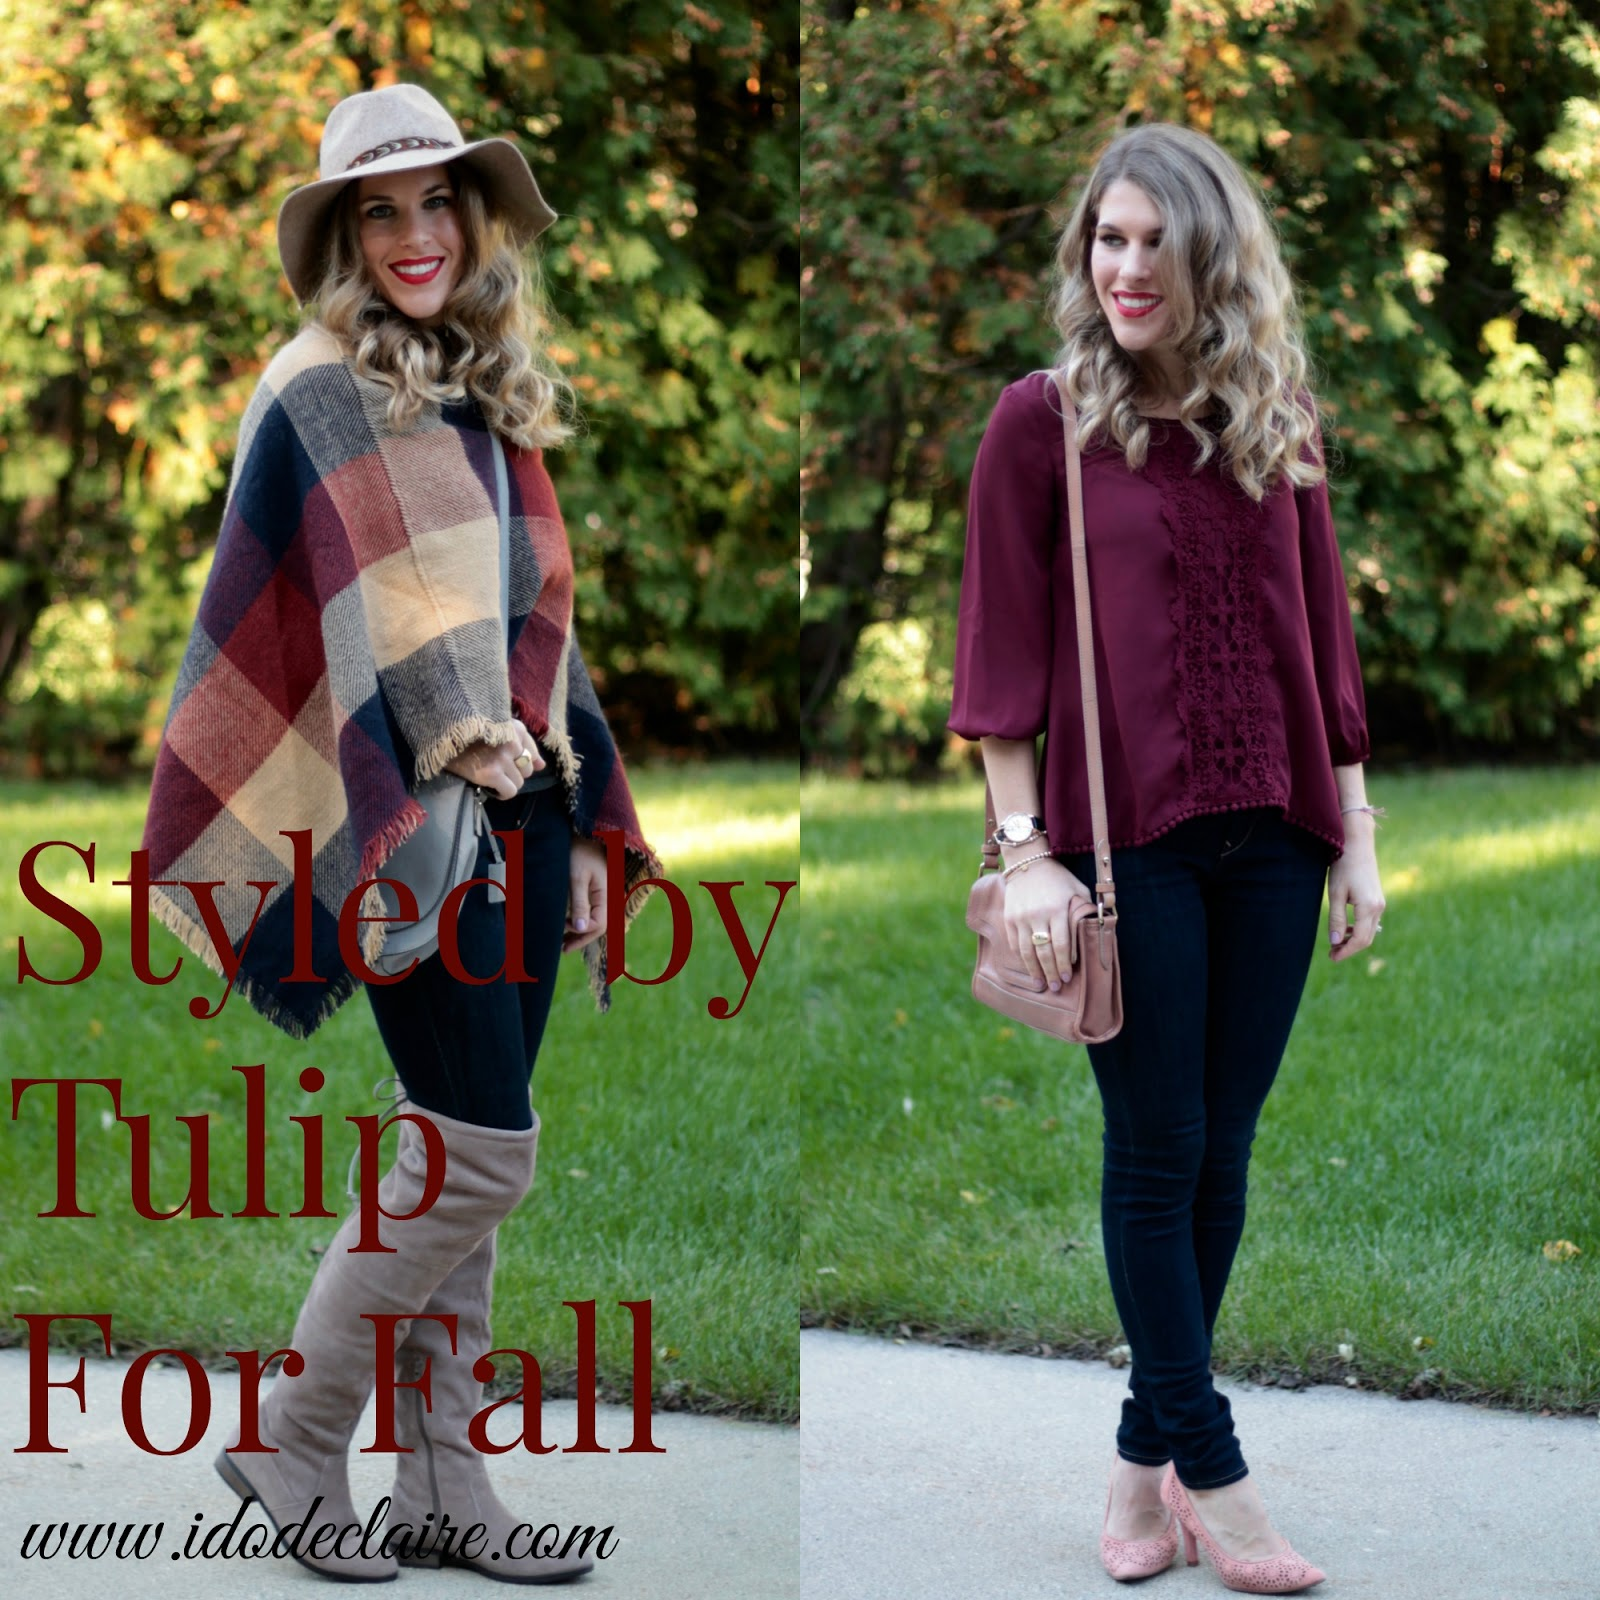 wo casual fall outfits by Tulip, plaid poncho, Express dark rinse jeggings, panama hat, Michael Kors saddlebag, Sole Society Valencia boots, burgundy blouse, blush crossbody bag, blush laser cute heels